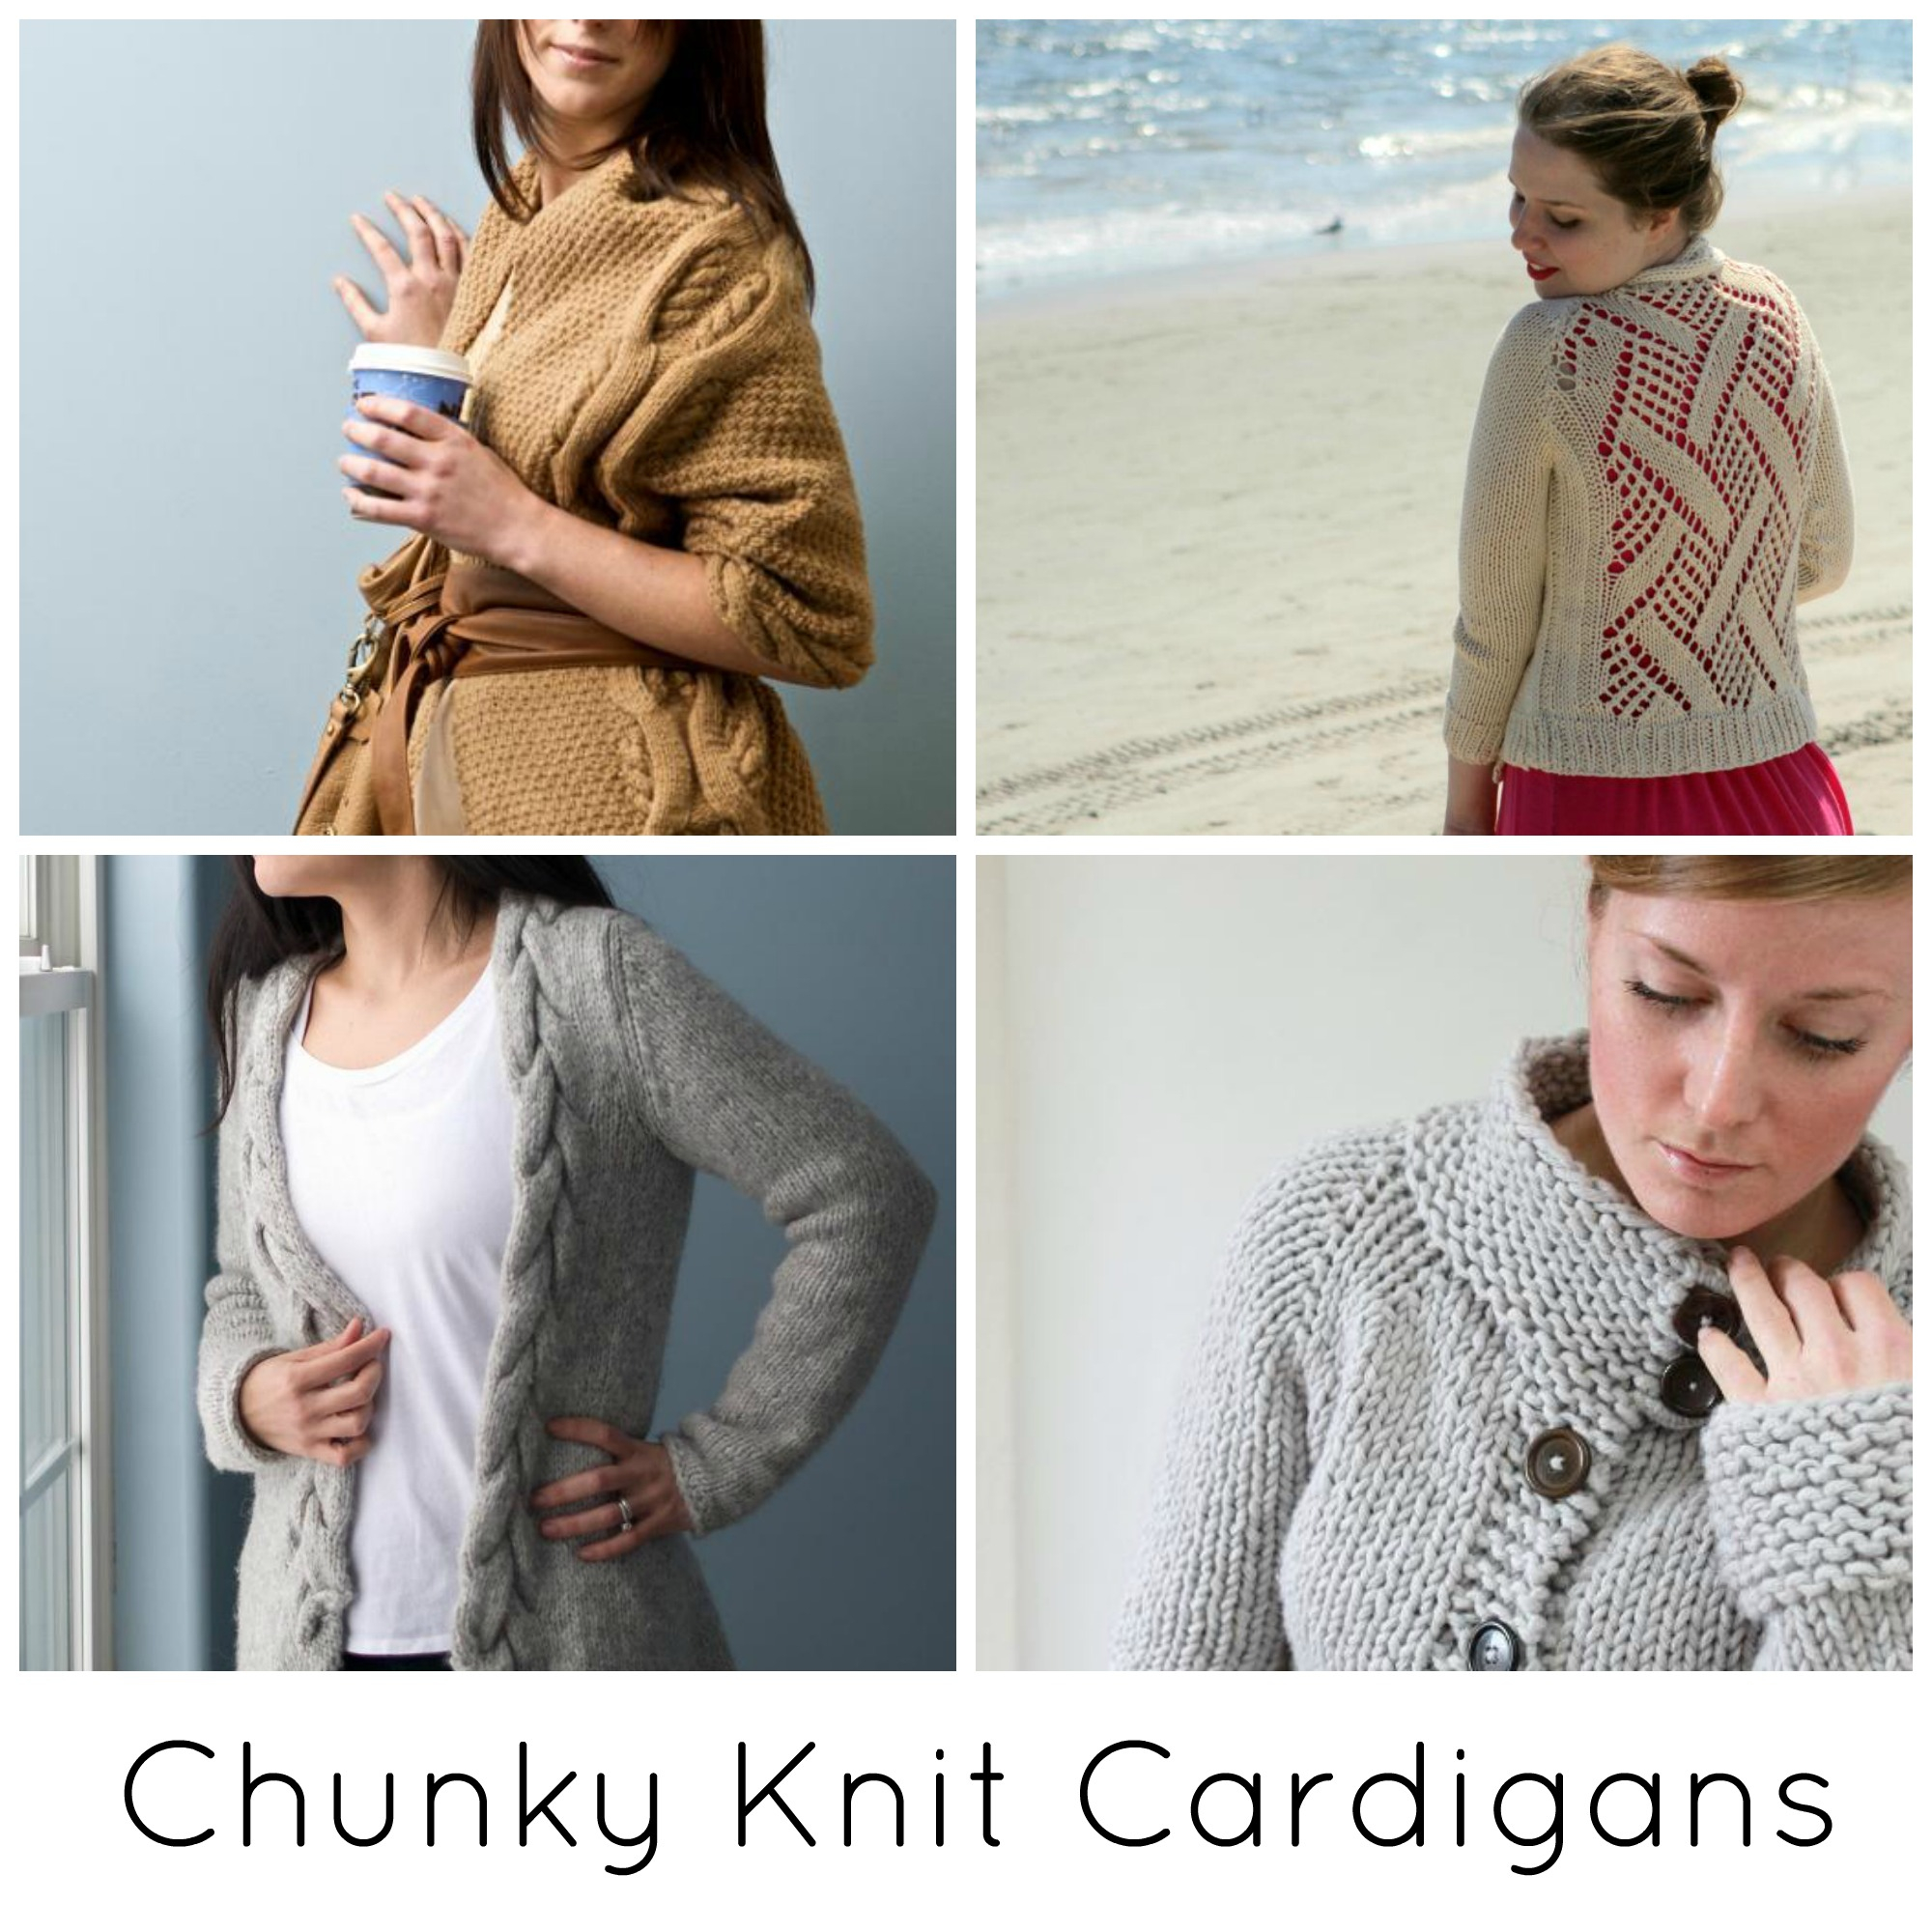 Free Bulky Knitting Patterns The Coziest Chunky Knit Cardigan Patterns Ever